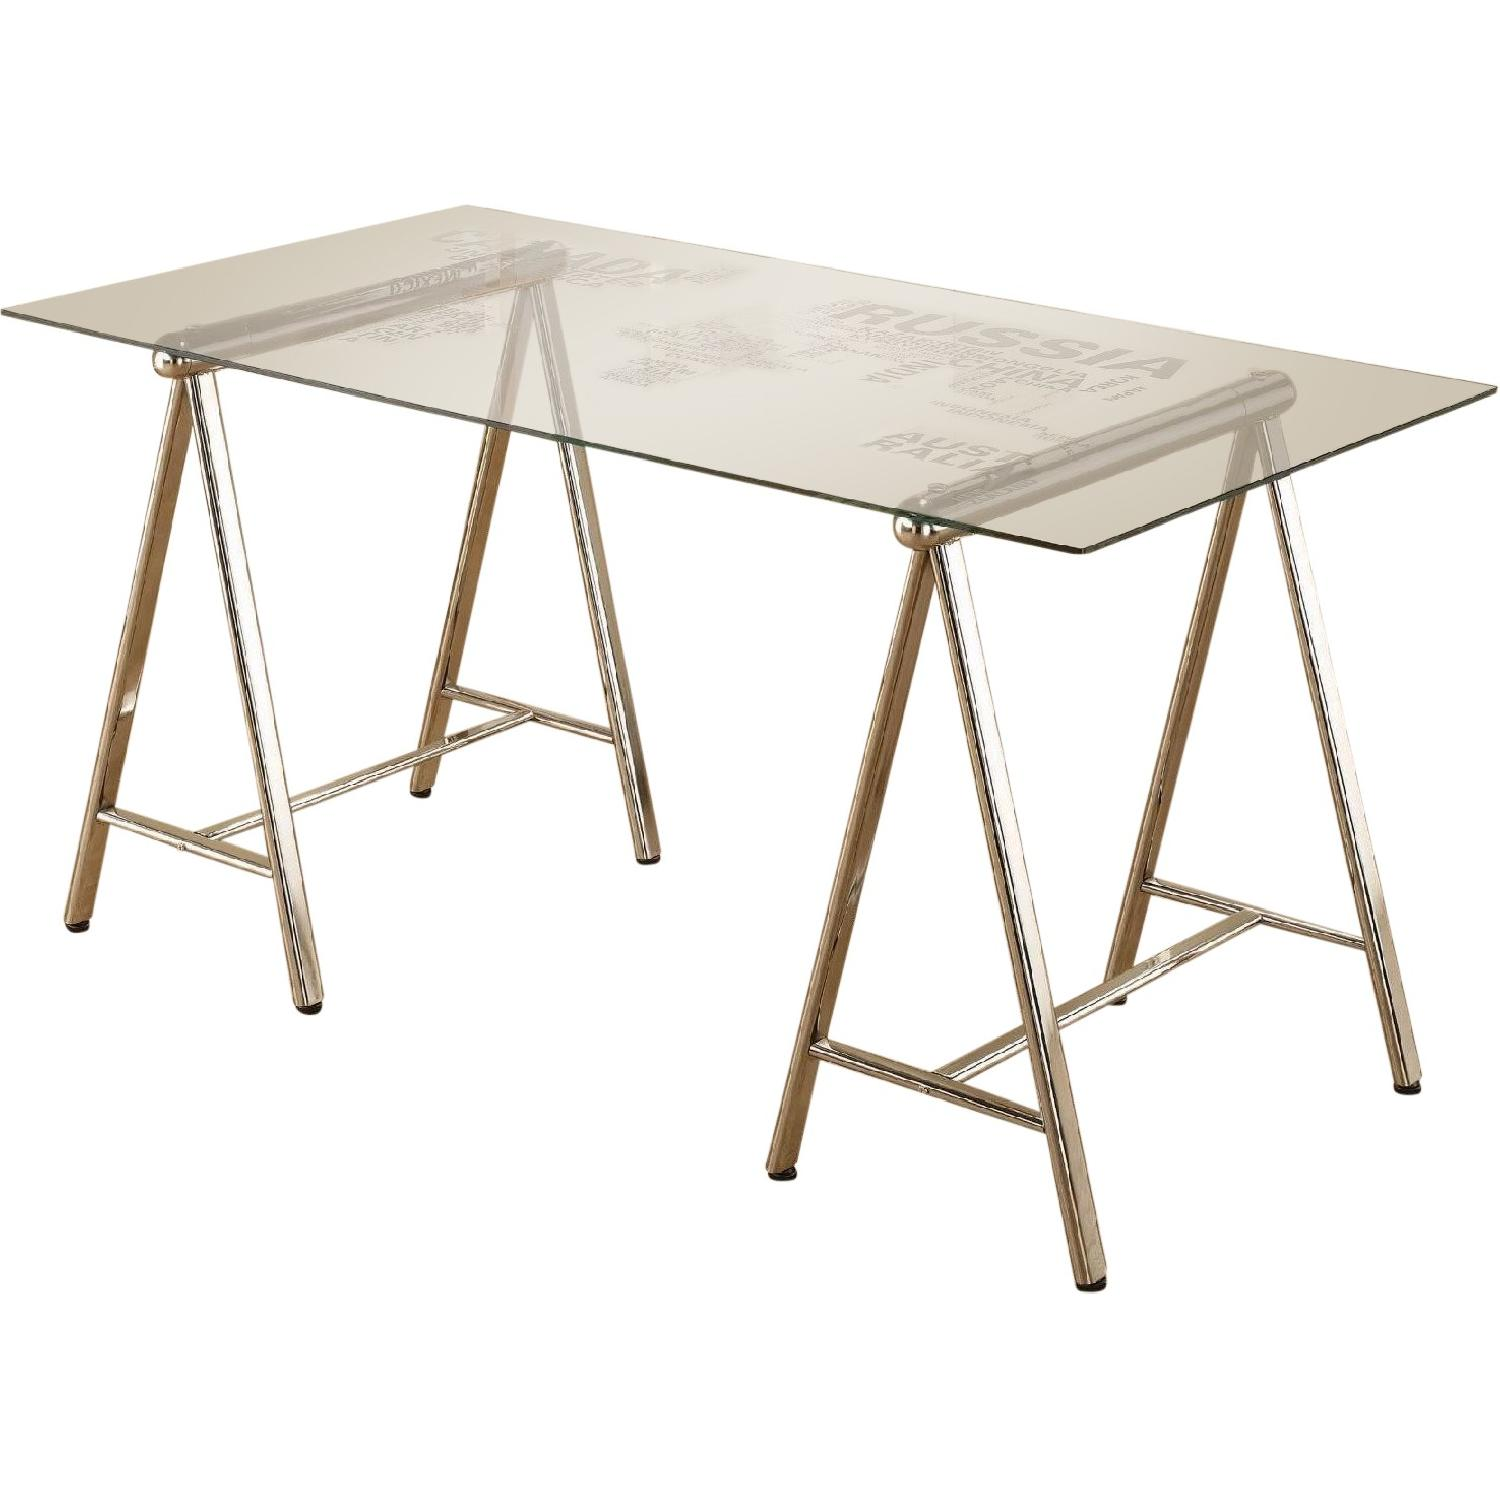 Parallel lines parsons glass dining table aptdeco writing desk w world map printed tempered glass top nickel finished metal legs gumiabroncs Gallery